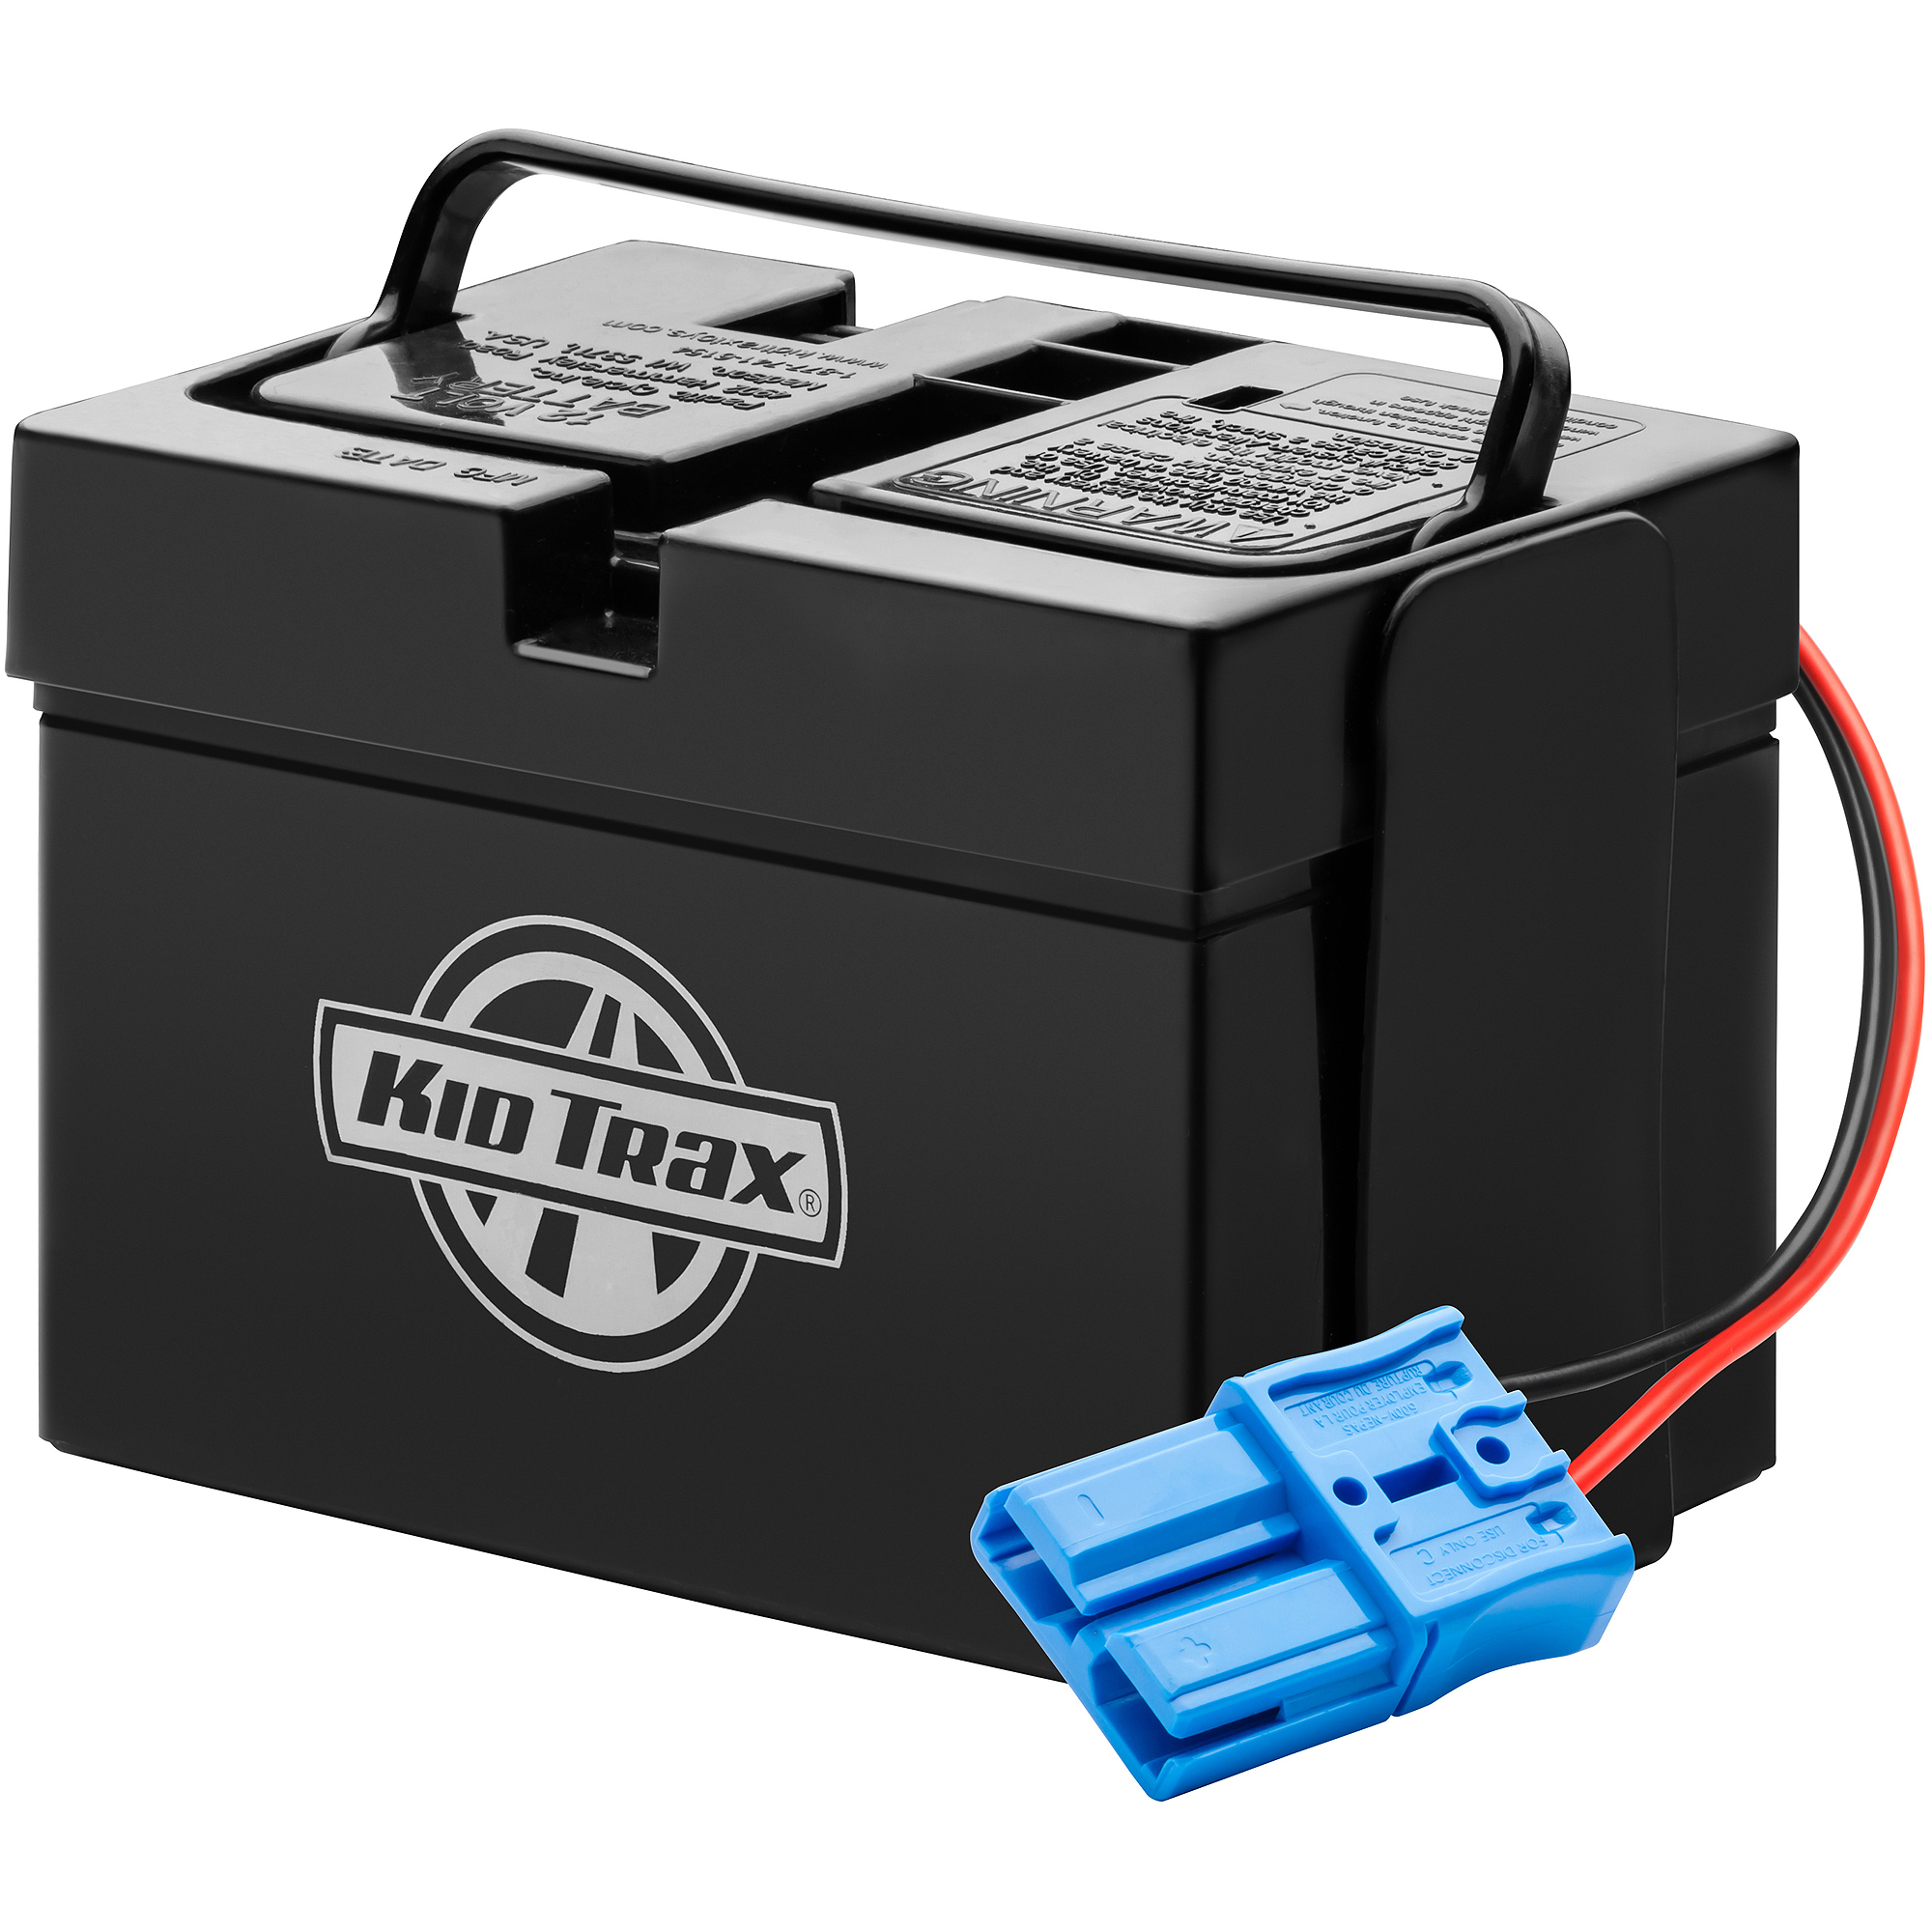 Walmart Truck Batteries >> Kid Trax 12 volt 12Ah Replacement Rechargable Battery for Ride-on Toy - Walmart.com